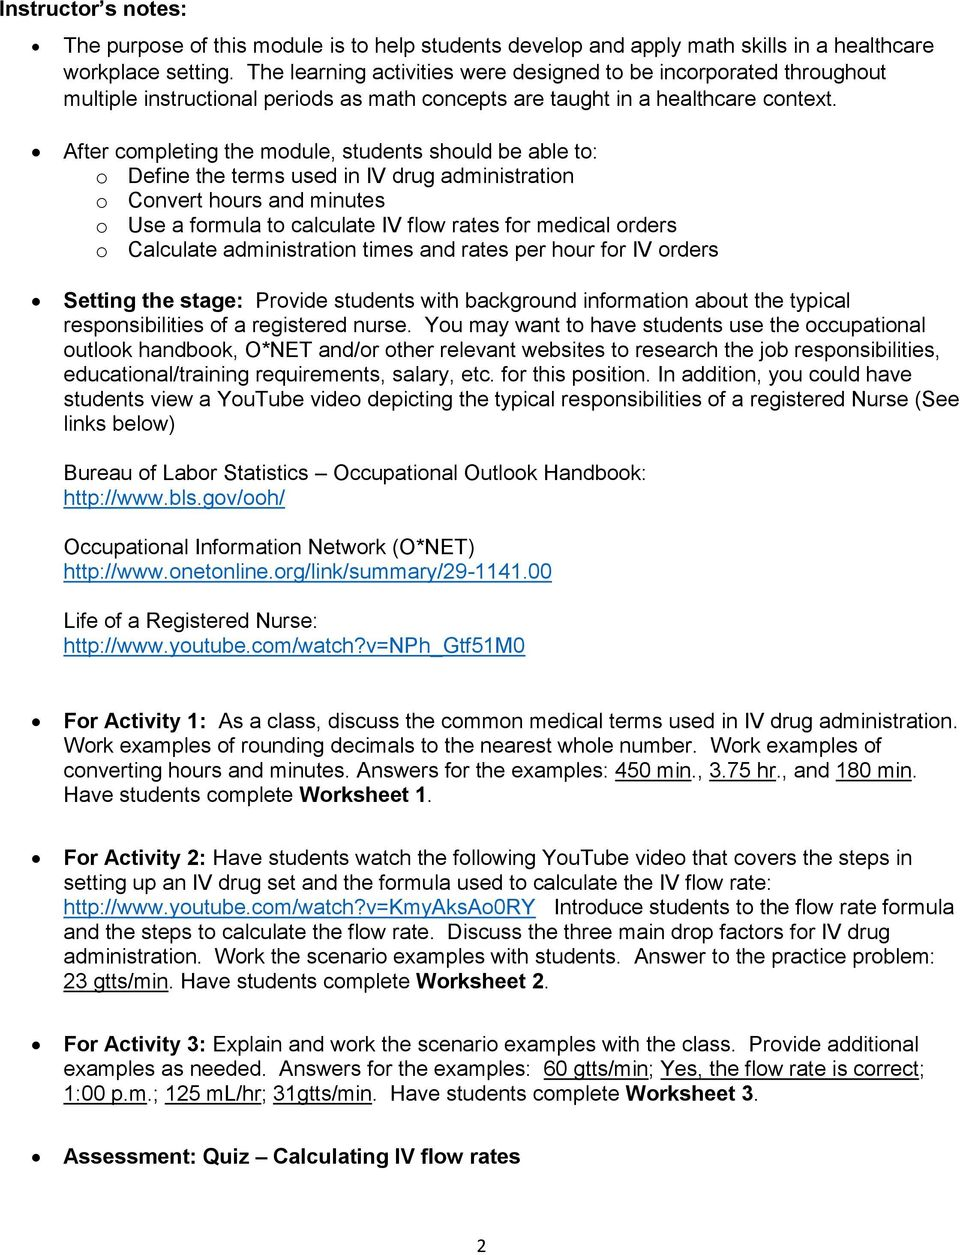 worksheet Occupational Outlook Handbook Worksheet healthcare math calculating iv flow rates pdf after completing the module students should be able to o define terms used